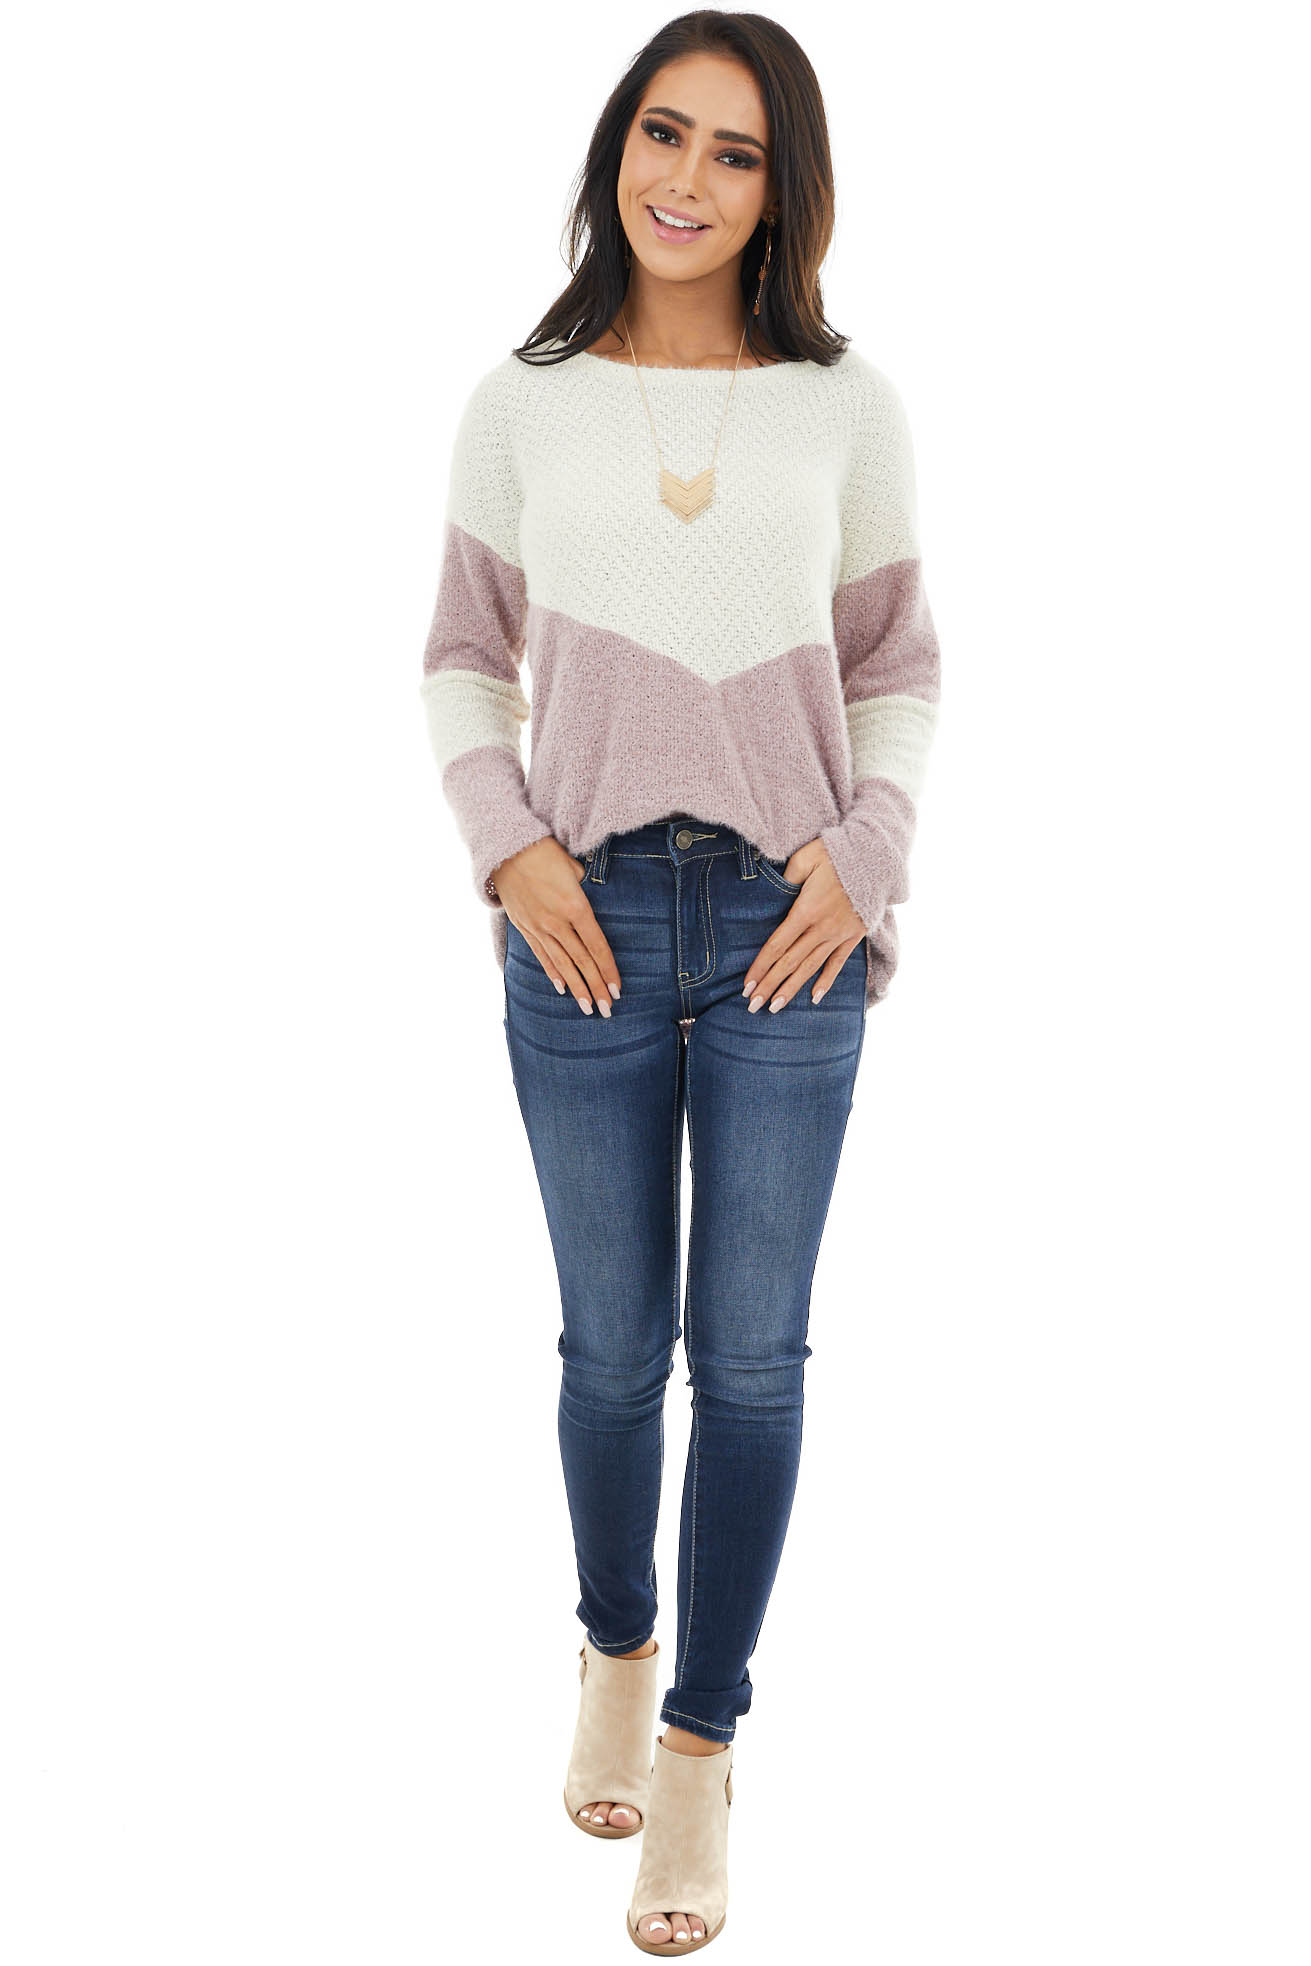 Mauve and Cream Colorblock Sweater with Loose Knit Detail